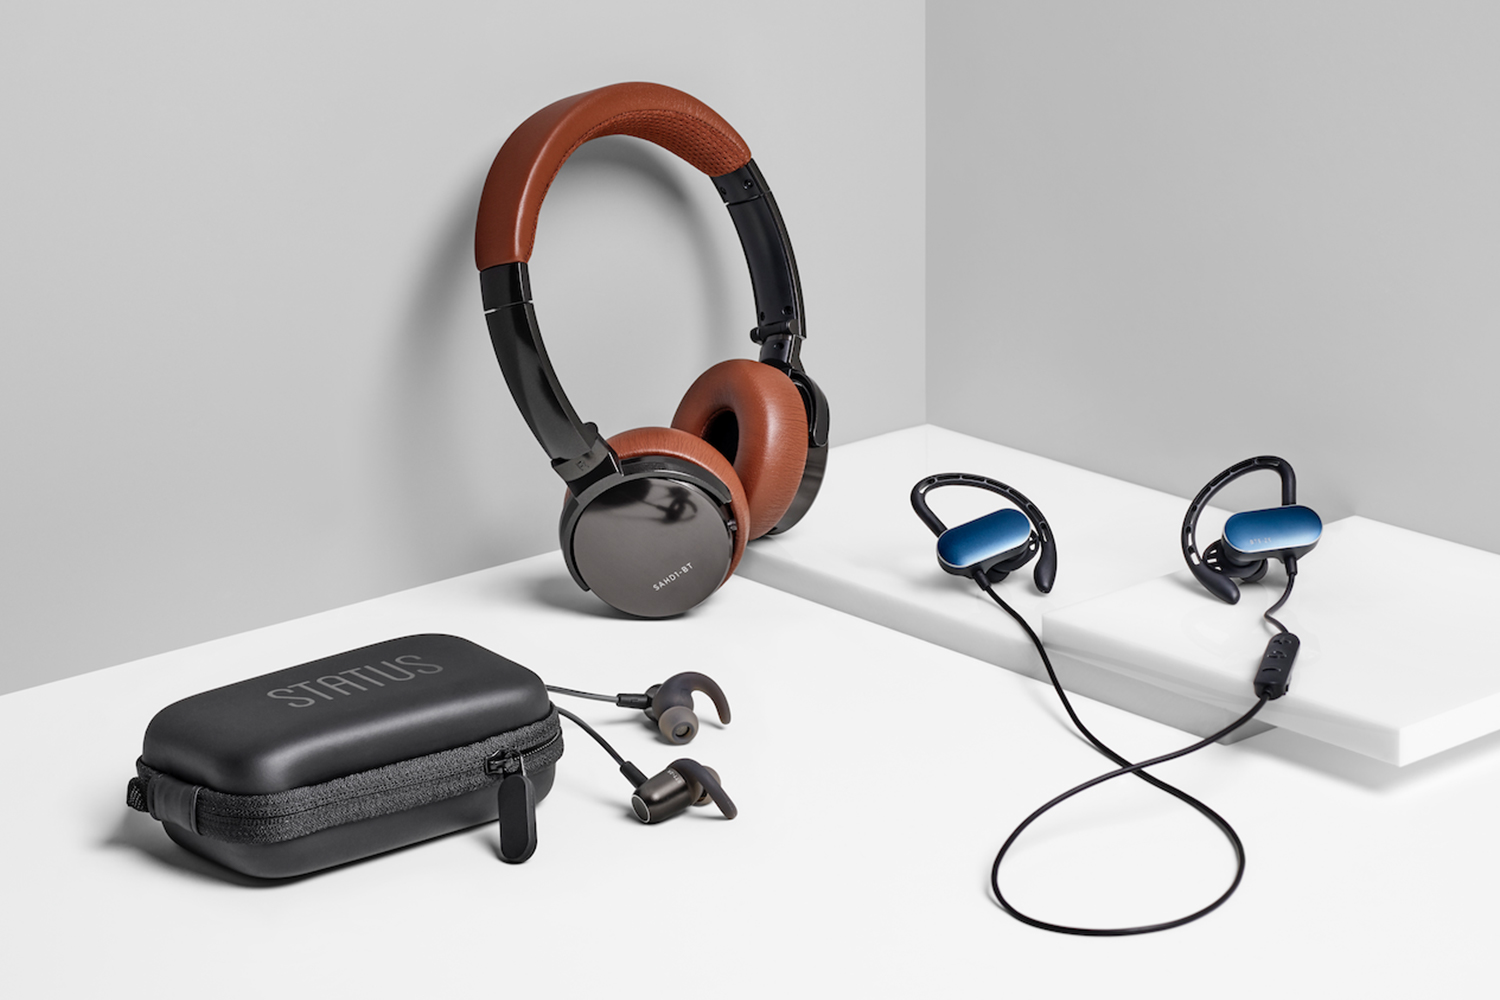 Deal: Status Headphones Are Always A Bargain. Now They're 40% Off.